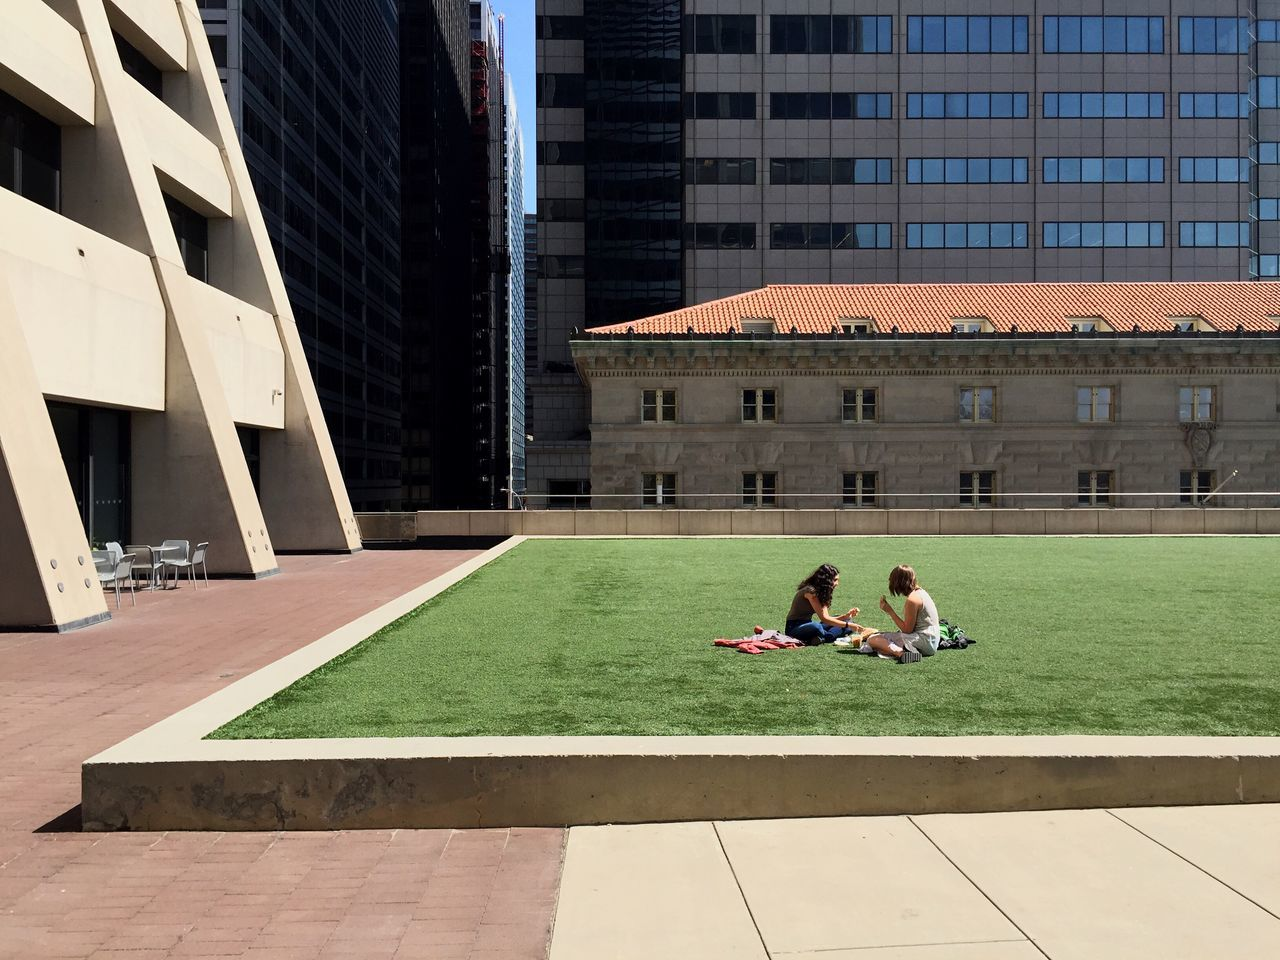 I've found an oasis in Financial District. Besides, I'm wishing for any clouds to appear soon above New York as the sun was burning for 4 days straigt now and this is no photo-appropriate weather. • Check This Out Oasis Financial District  Green Grass Hanging Out Enjoying The Sun Terrace Architectural Detail Young Women Manhattan EyeEm Deutschland The Architect - 2016 EyeEm Awards